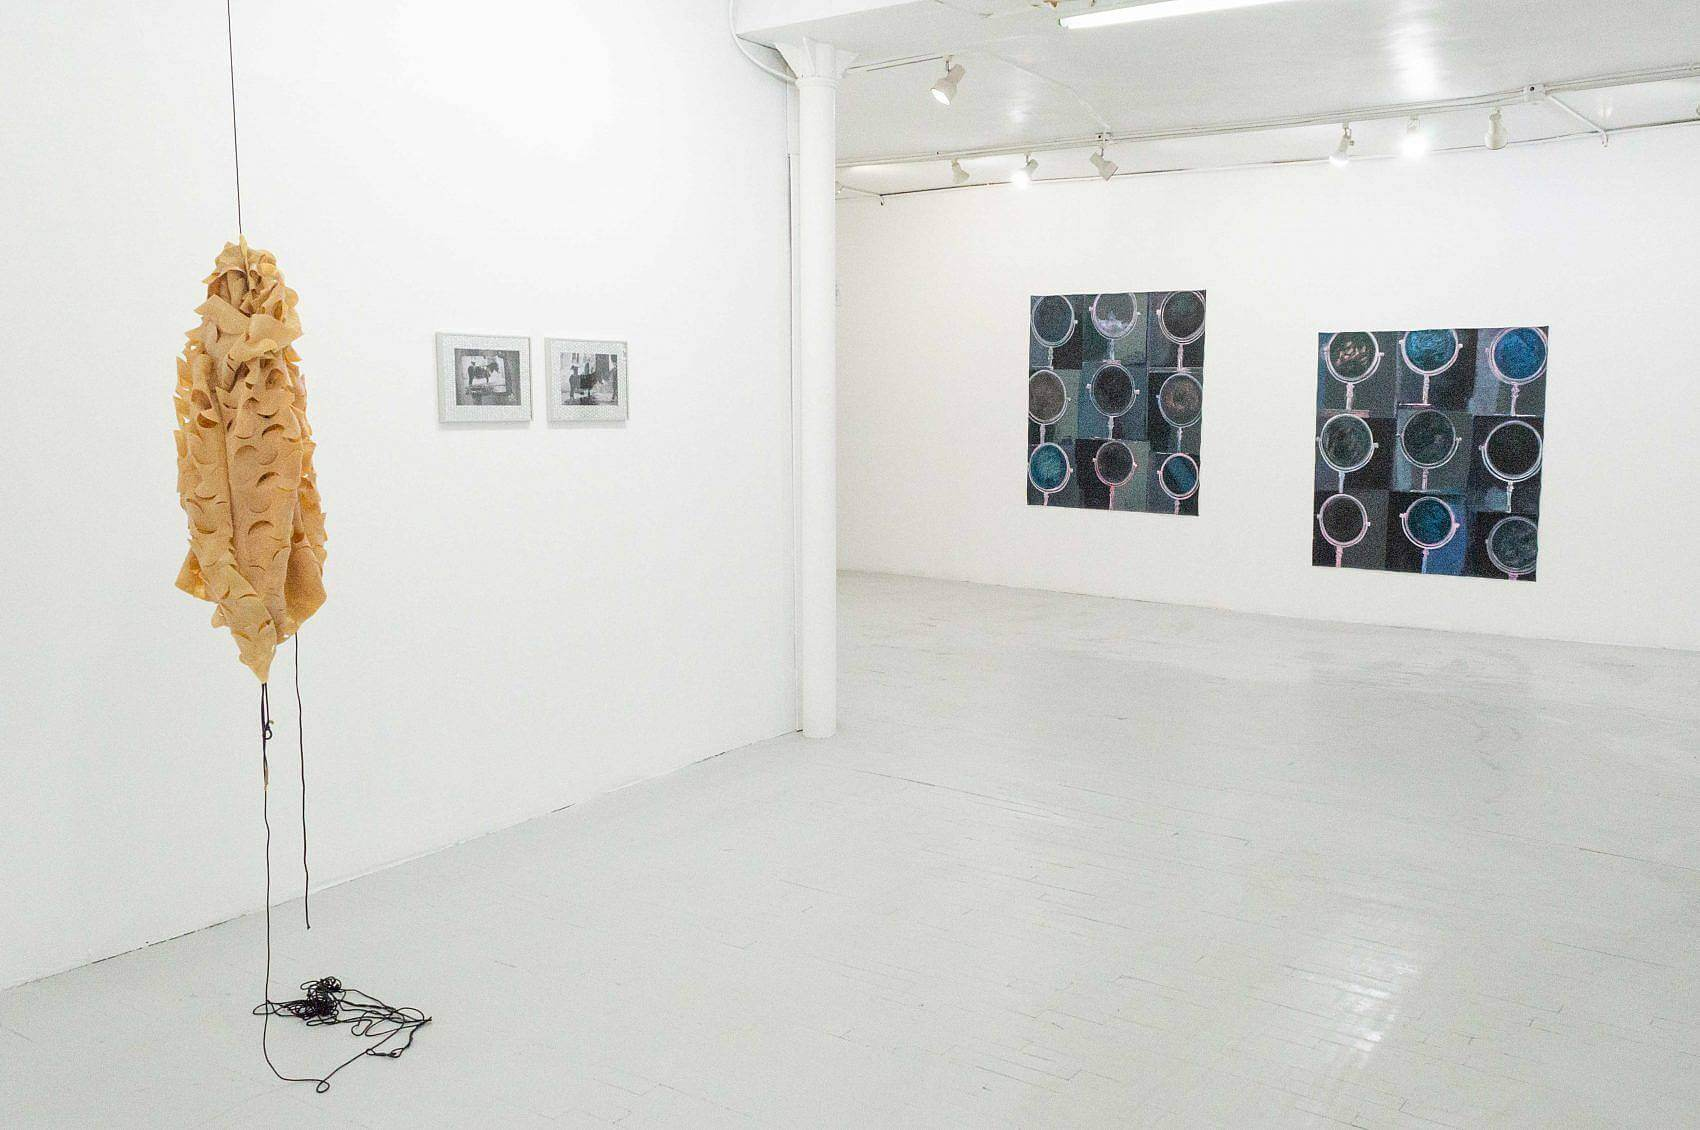 This is an installation shot of the exhibition. To the left, hanging in the space, is part of Zack Ingram's